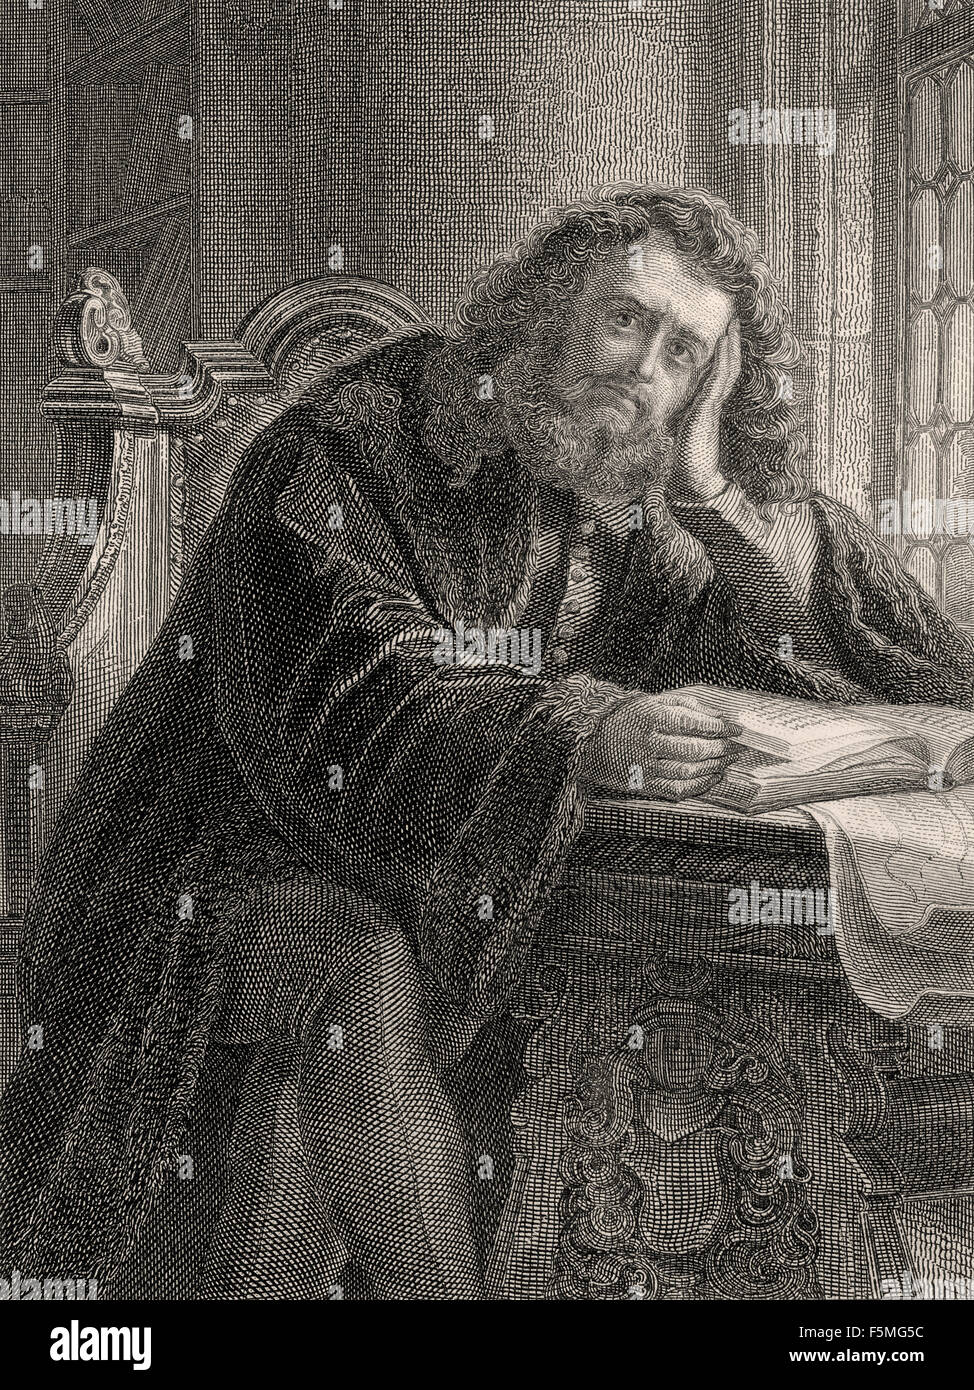 Dr. Heinrich Faust, in the tragedy Faust written by Johann Wolfgang von Goethe Stock Photo